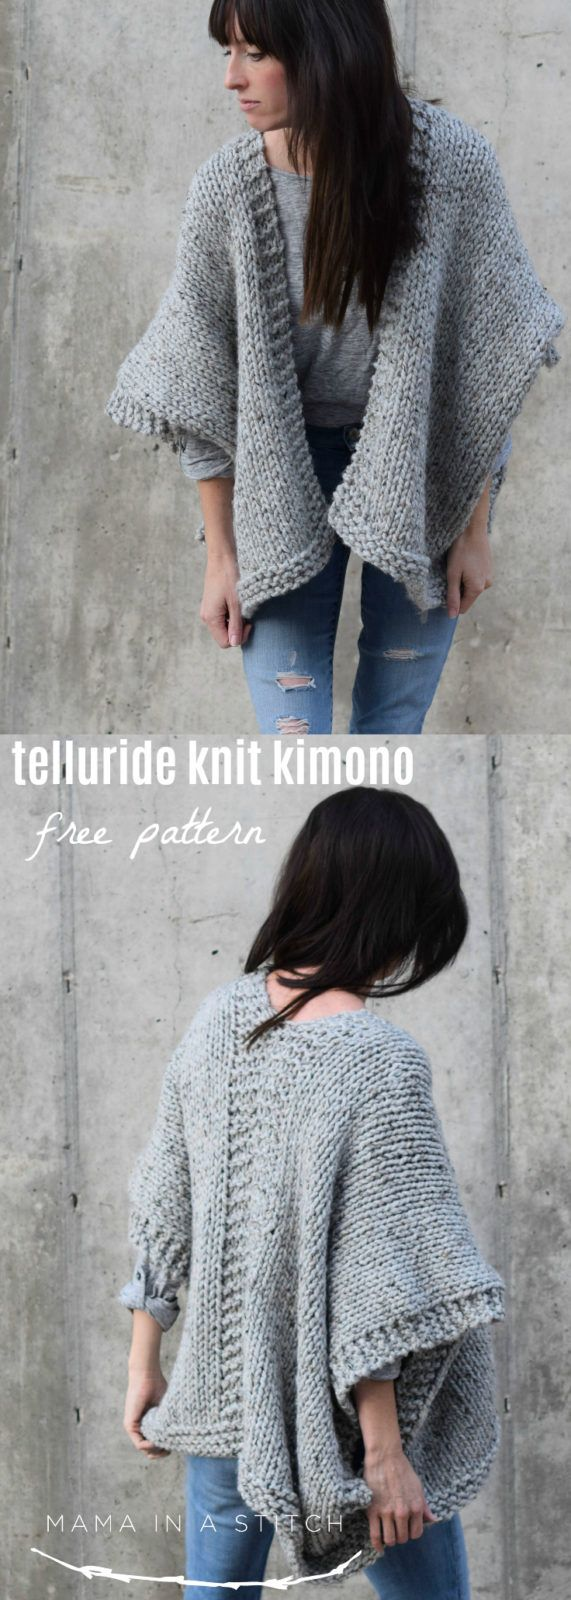 This easy, free knitting pattern for a knit kimono cardigan is so simple and cozy! via @MamaInAStitch